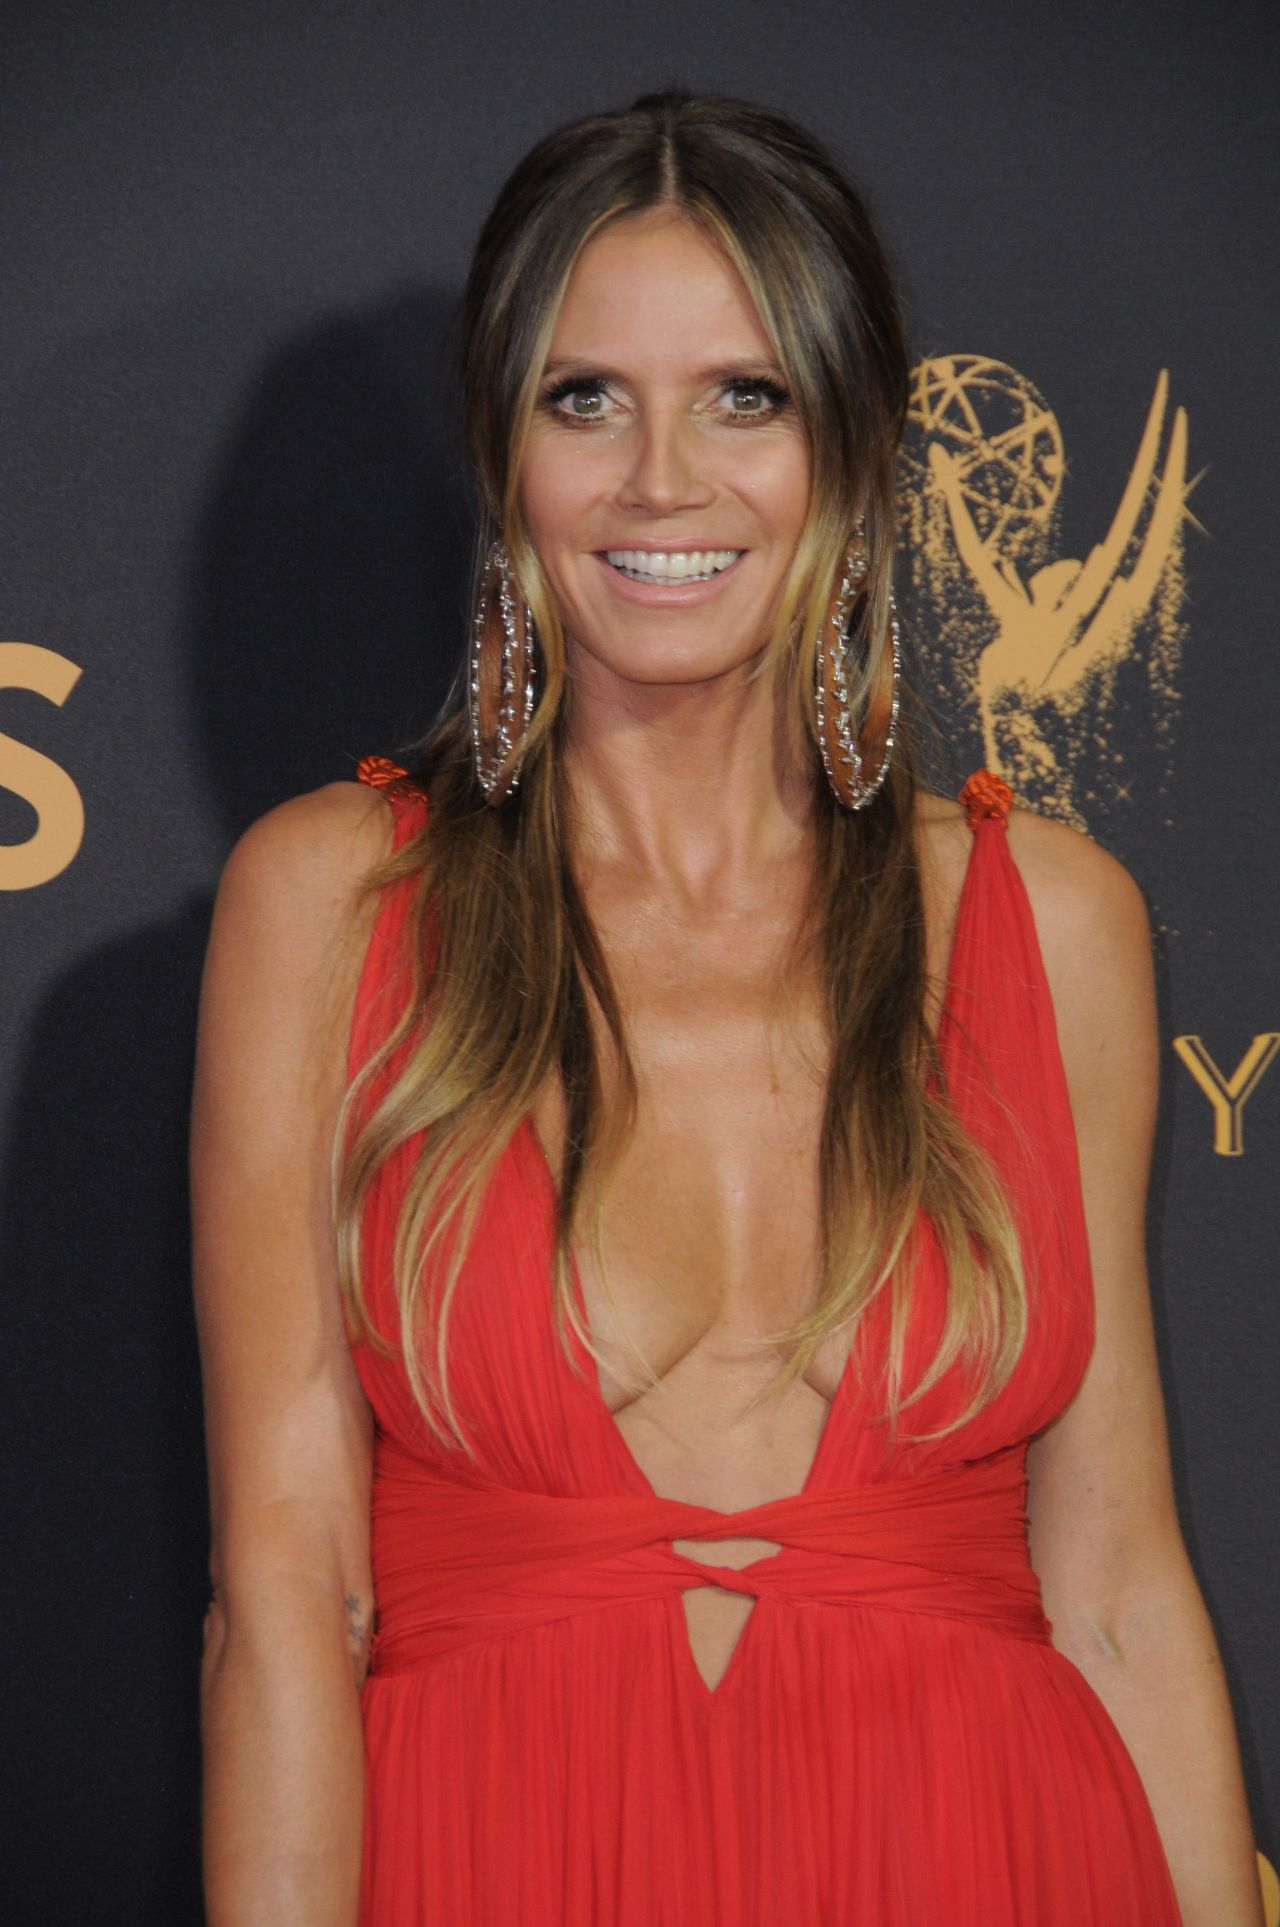 heidi klum emmy awards in los angeles 09 17 2017. Black Bedroom Furniture Sets. Home Design Ideas